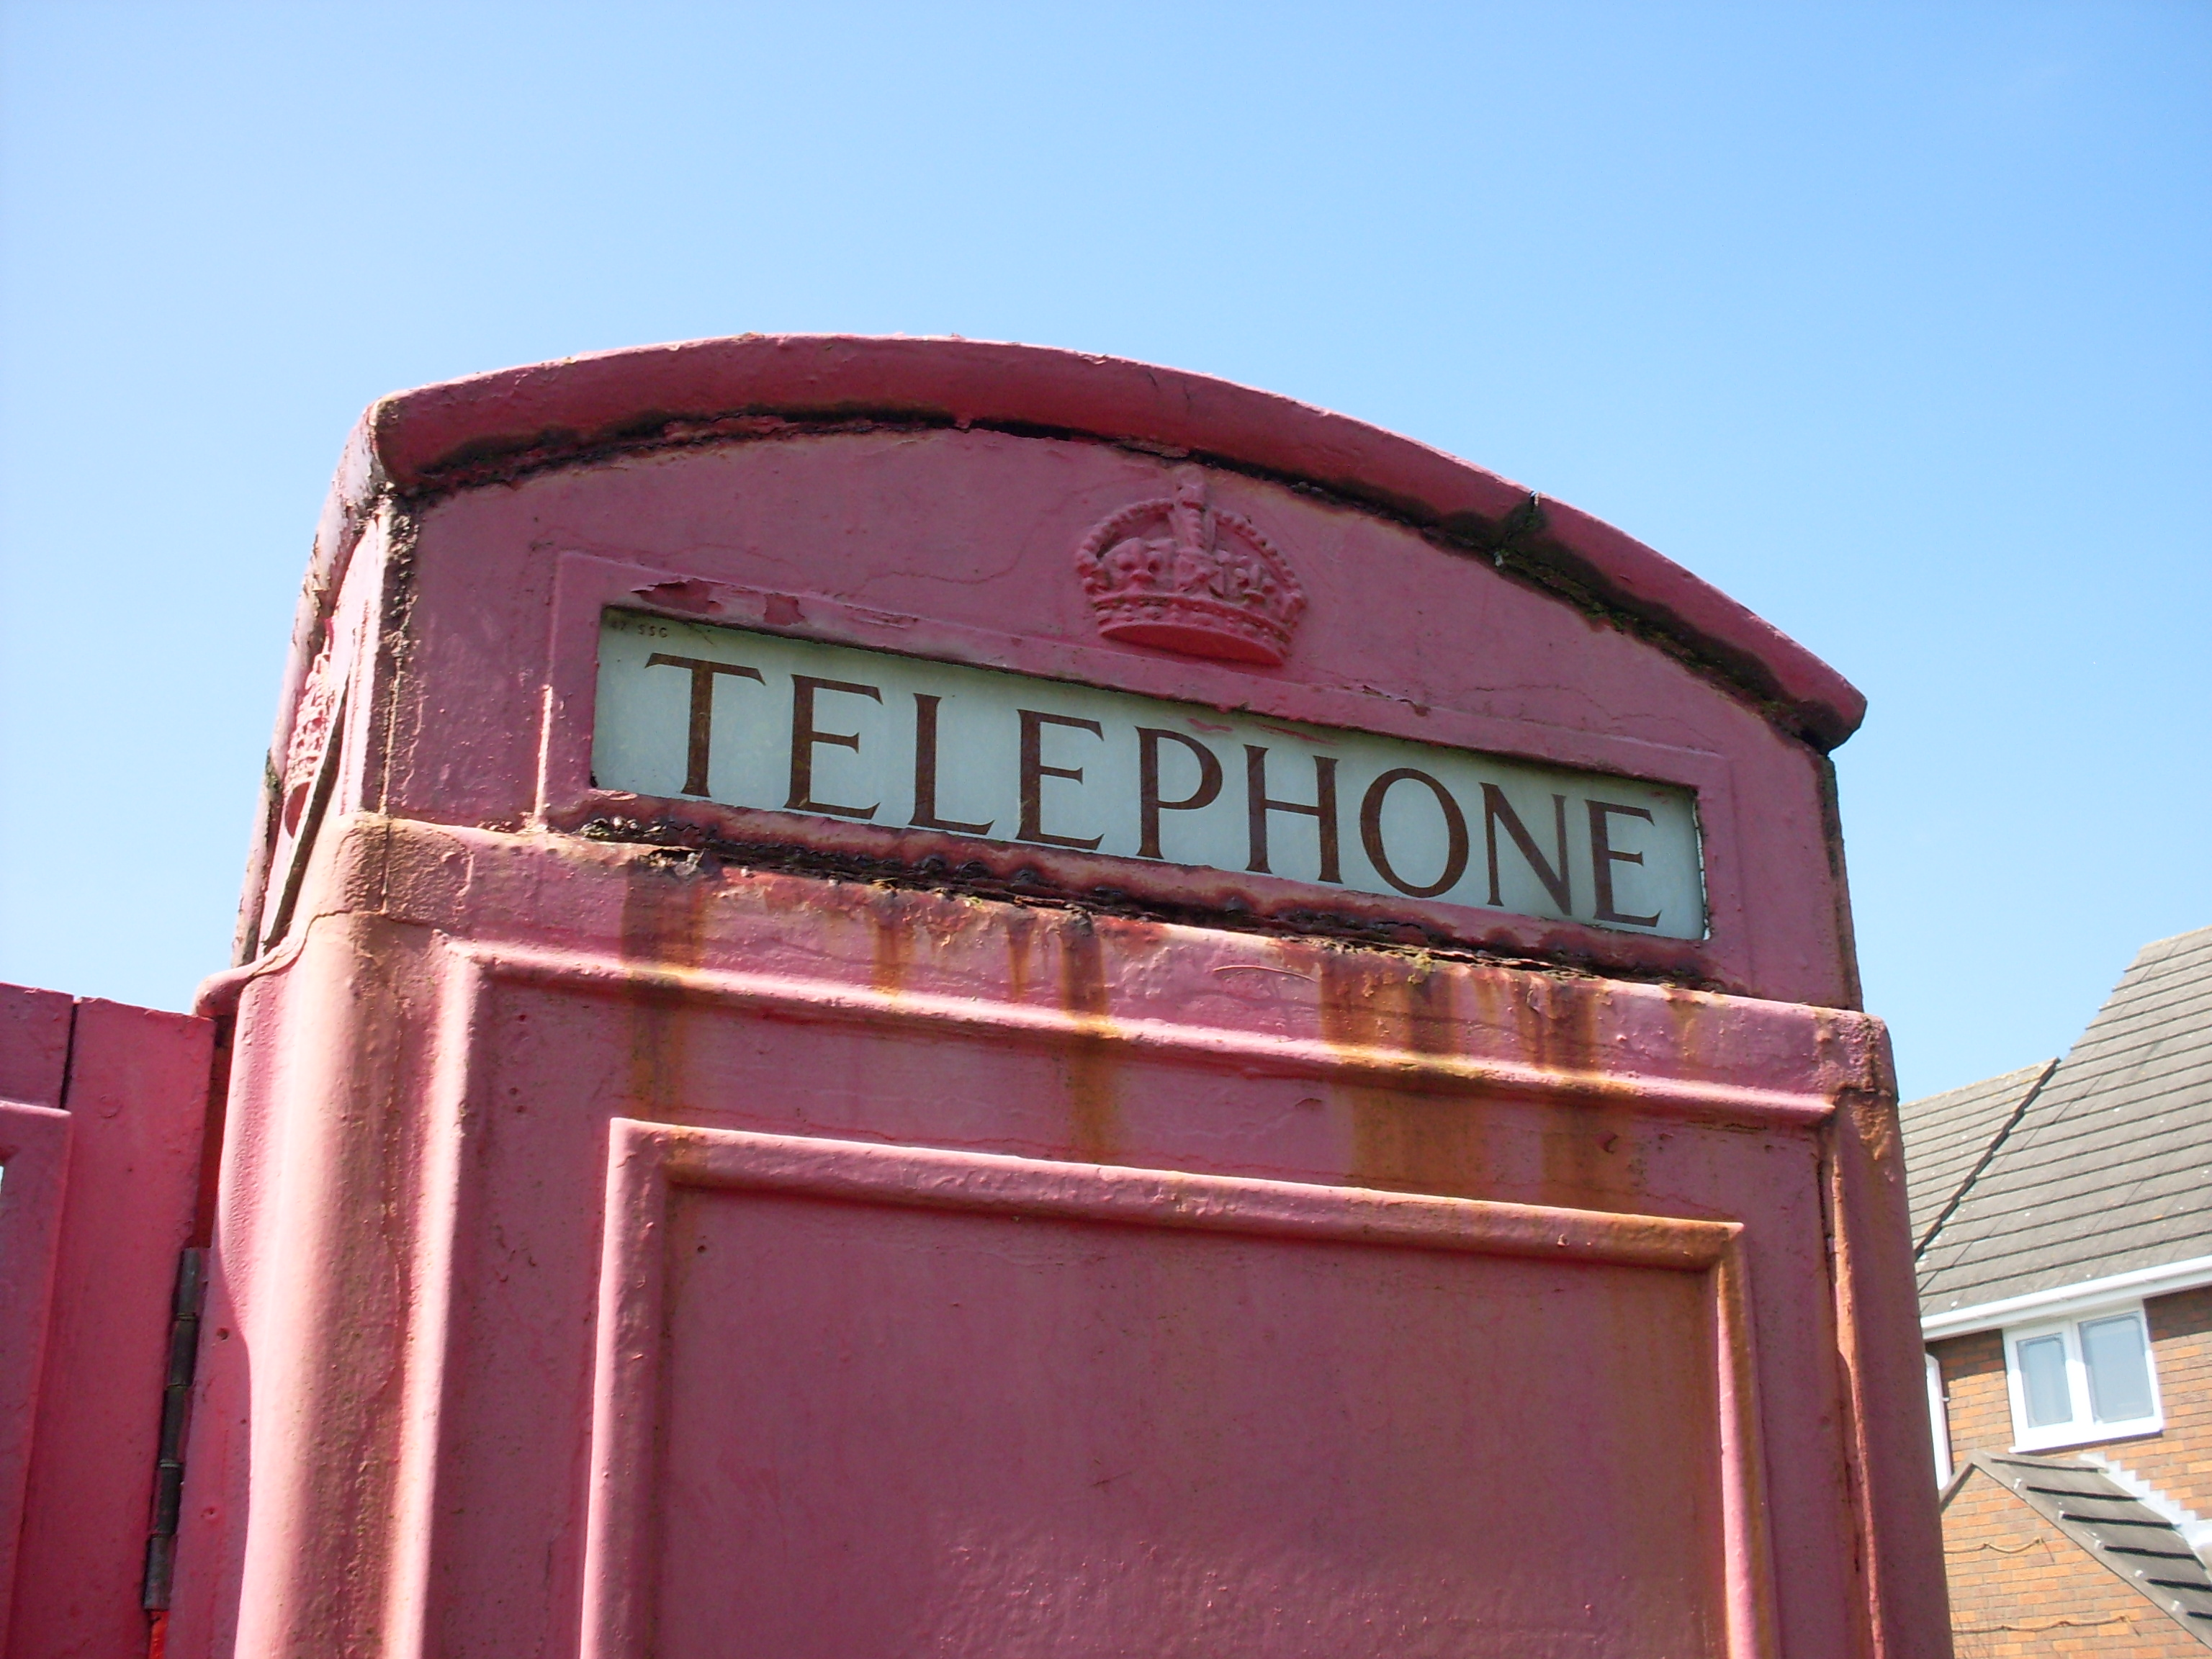 One of the backlit 'Telephone' panes, showing how bad the exterior rust has become over the years.